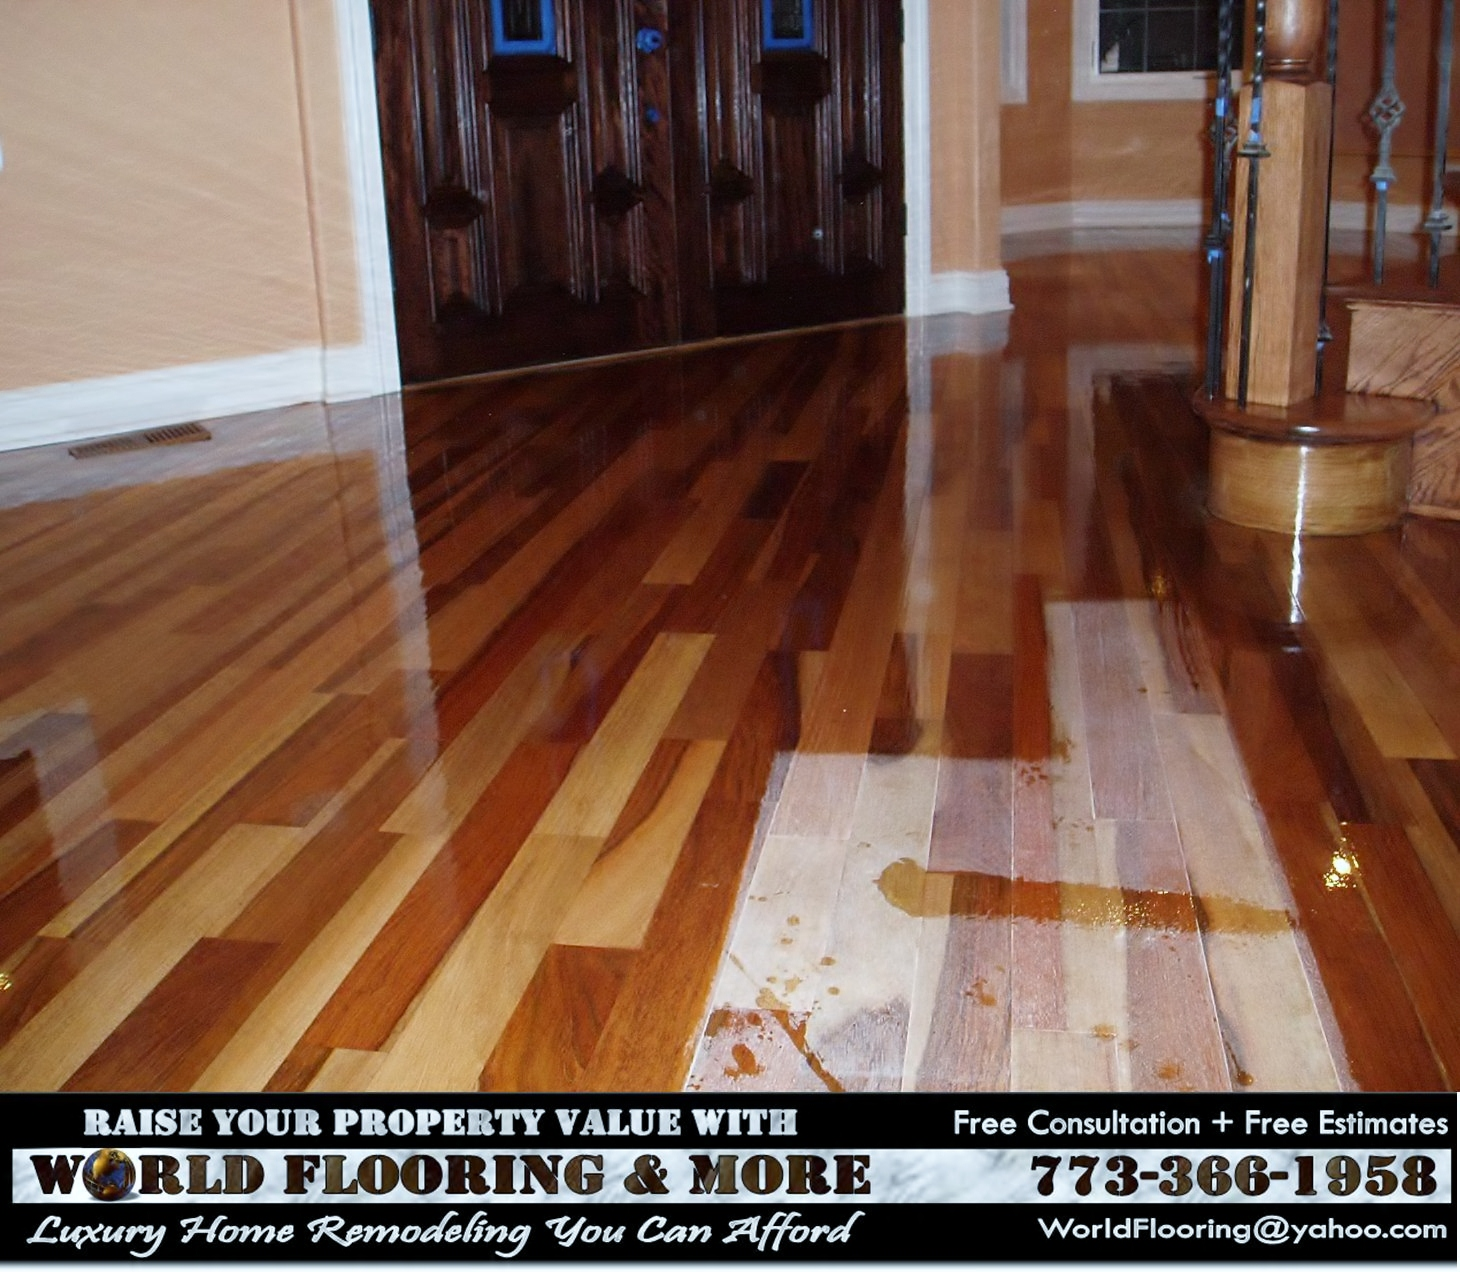 World flooring more free estimates chicago and suburbs for Hardwood floors estimate